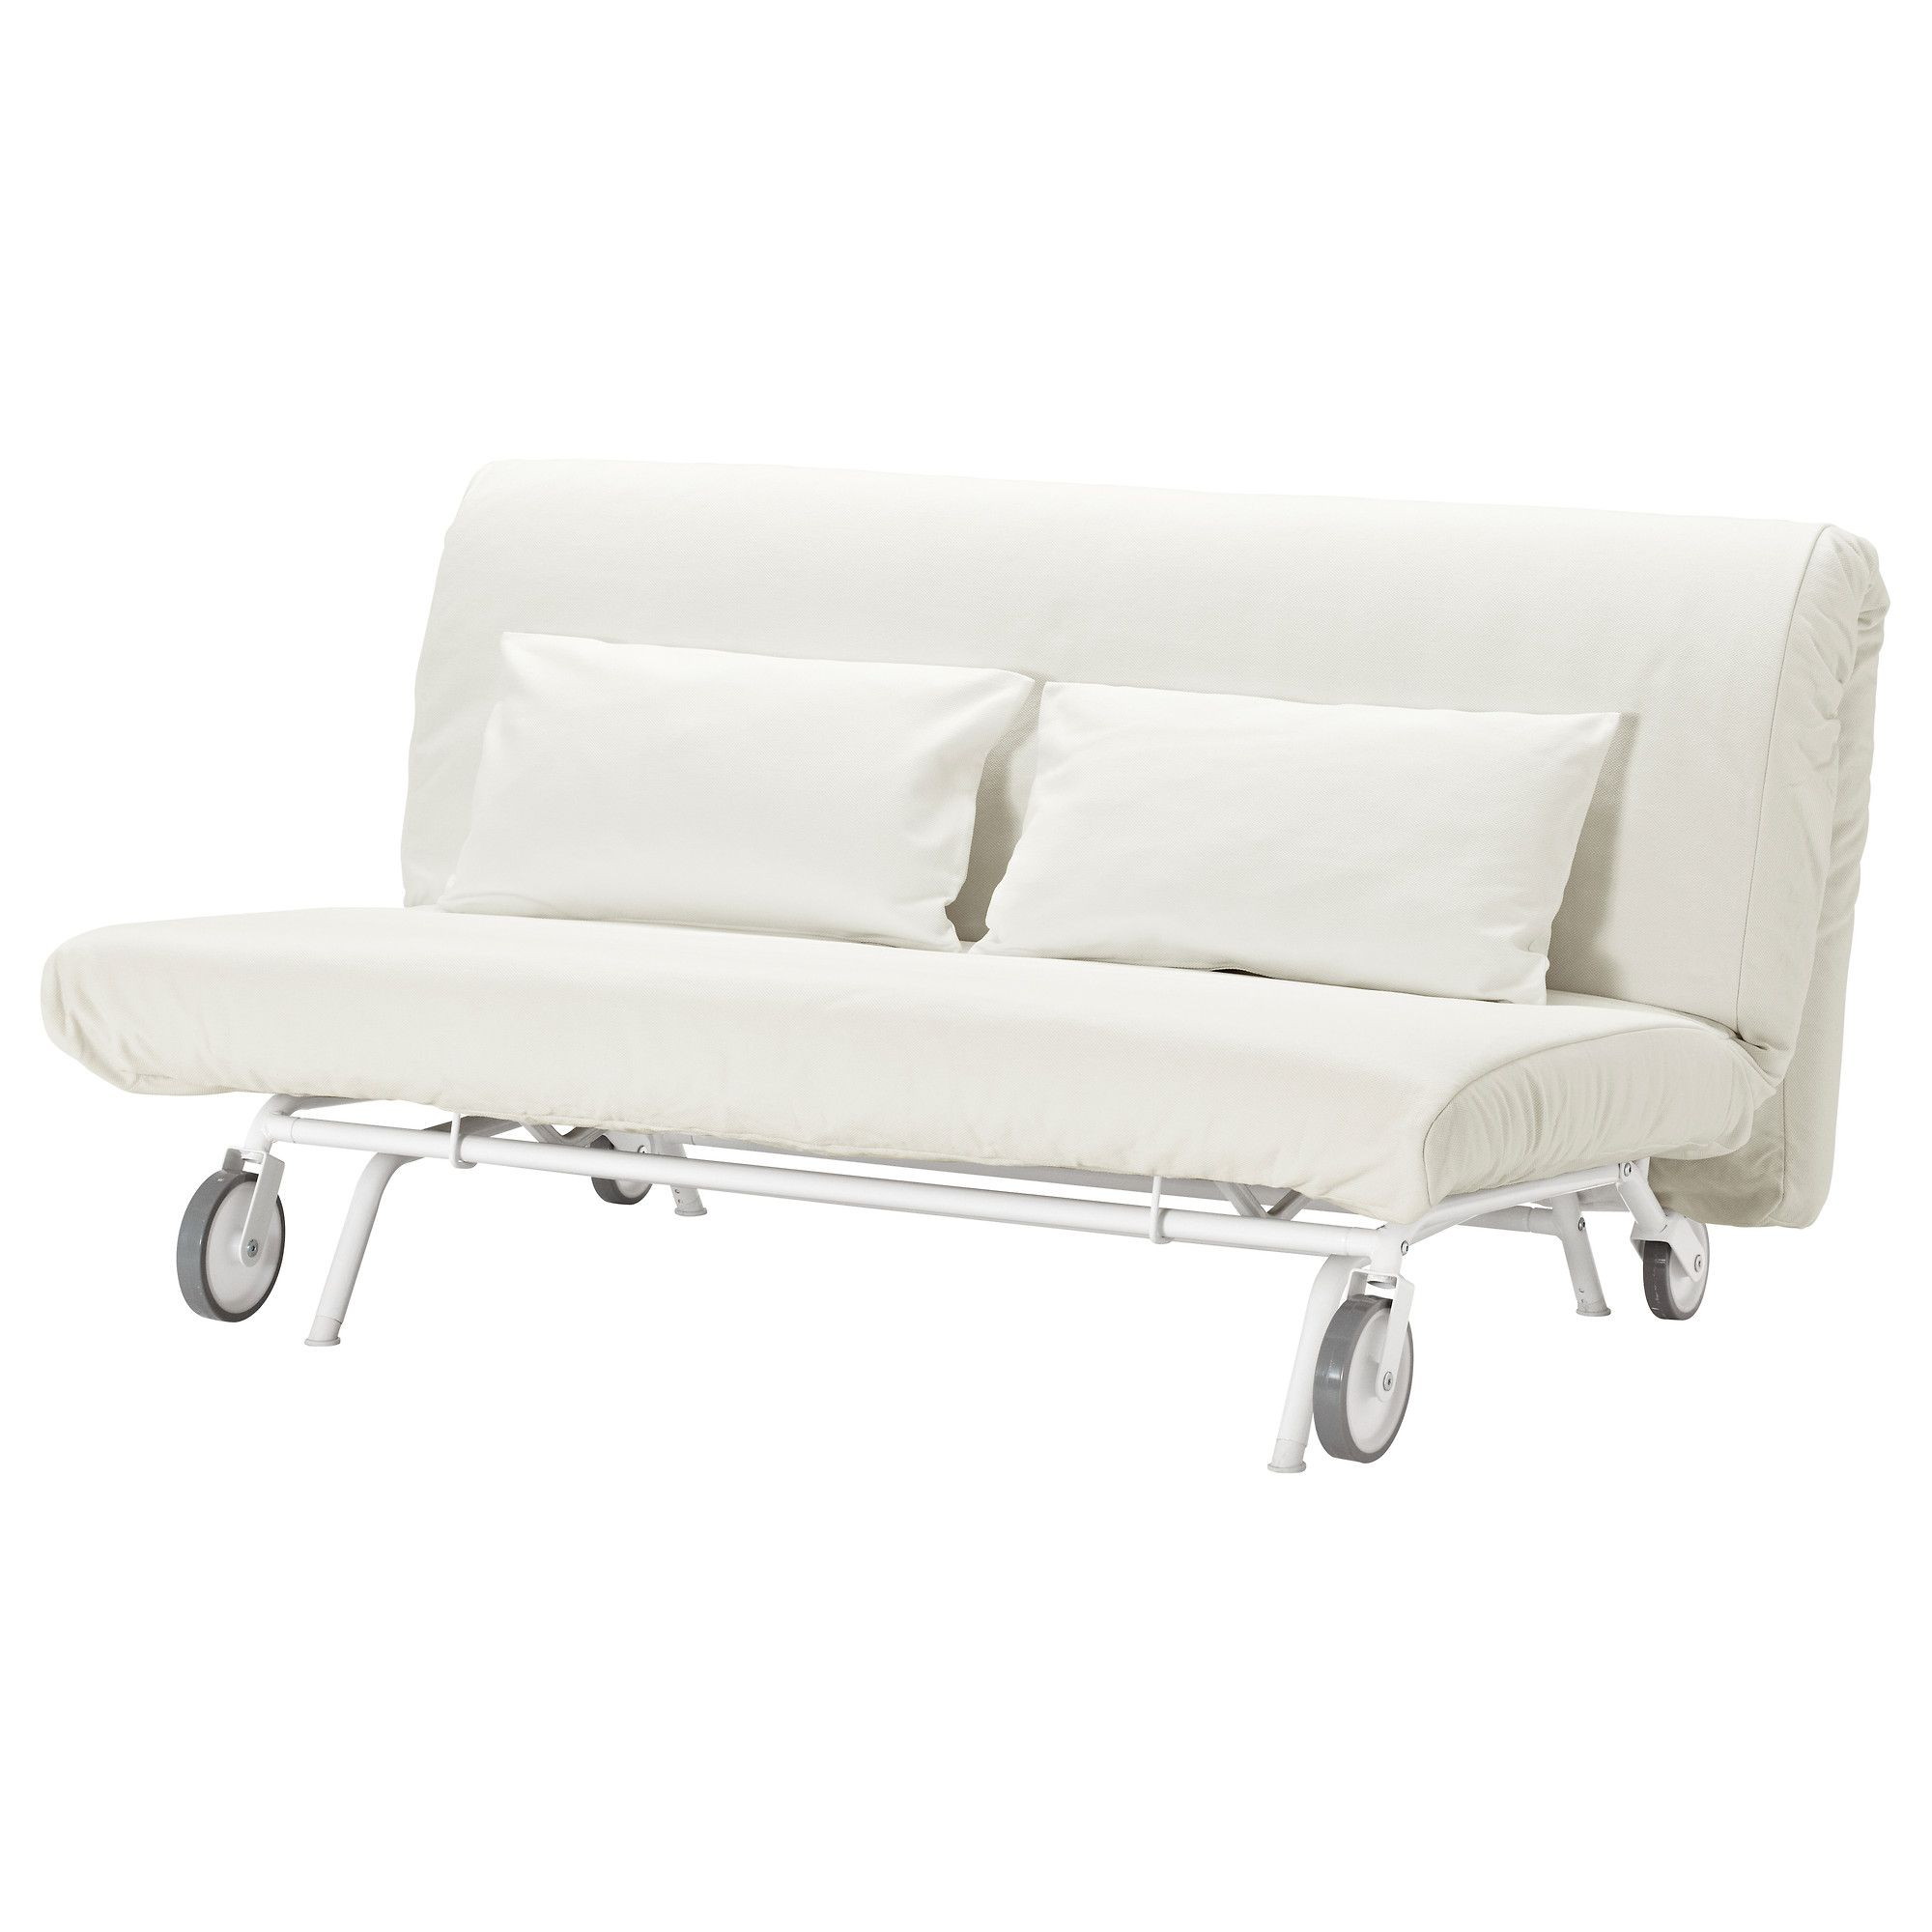 Where To Get Rid Of A Sleeper Sofa Cheap Beds Nyc Ikea Ps Lovas Two Seat Bed Grasbo White Extra Covers Alternate With Mean It Apos S Easy Give Both Your And Room New Look